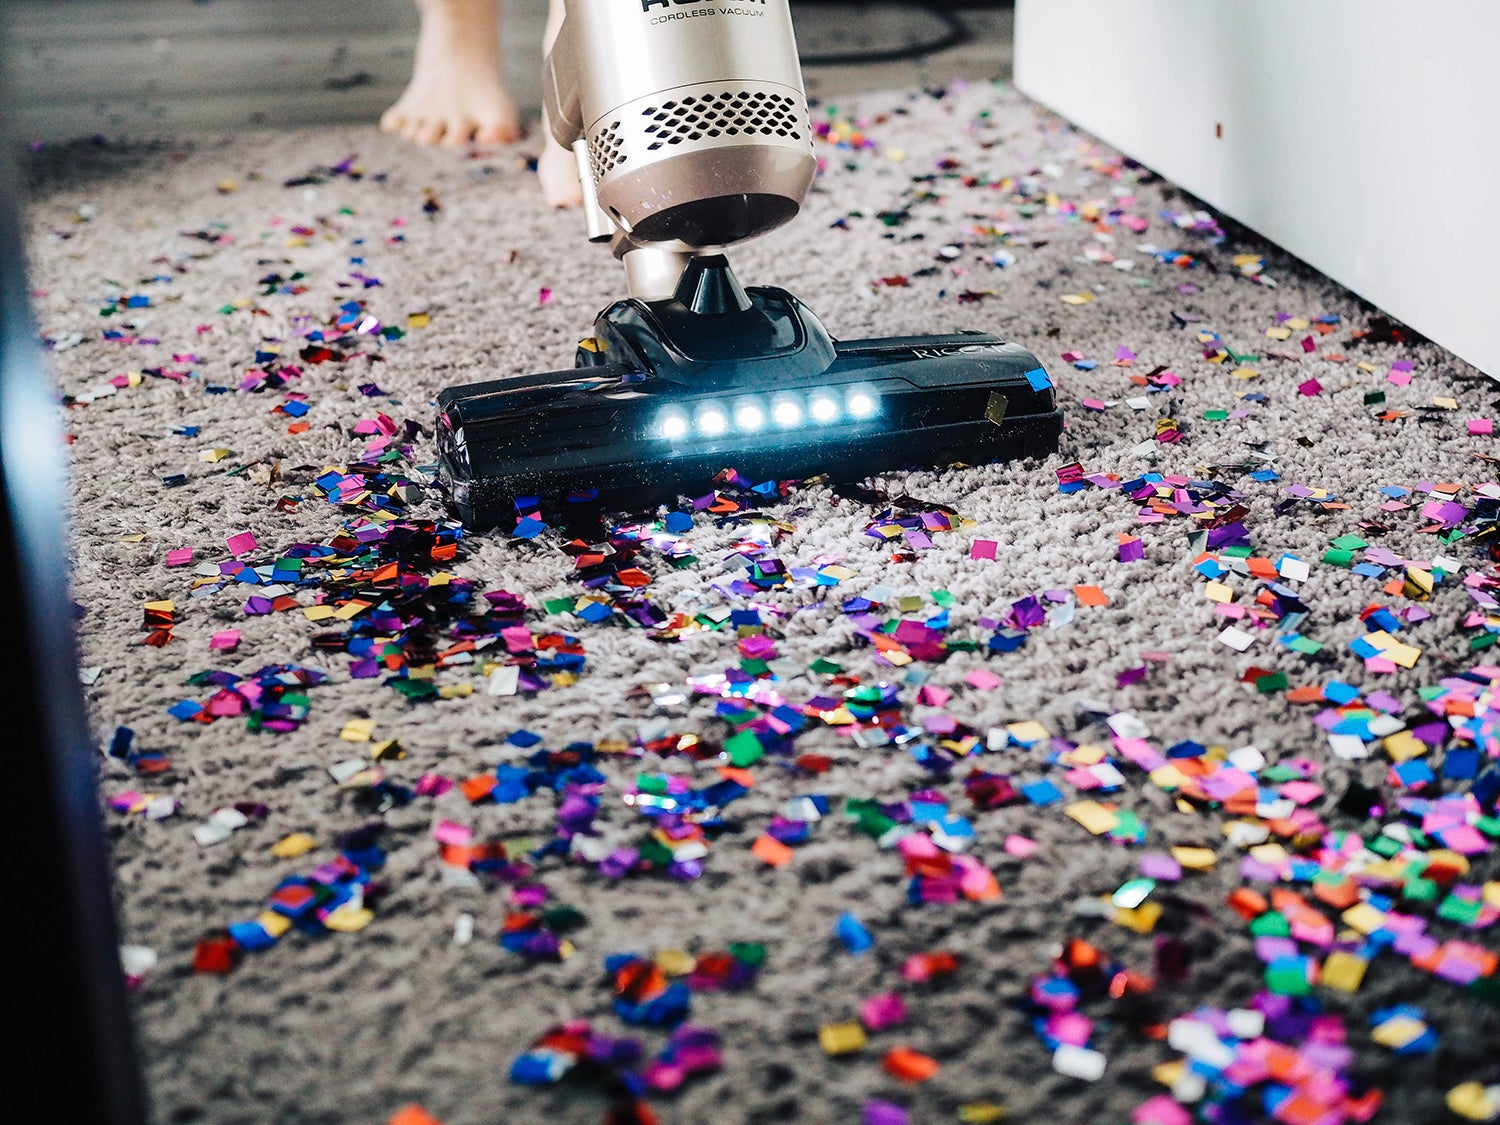 Cordless vacuum cleaning up confetti on the carpet